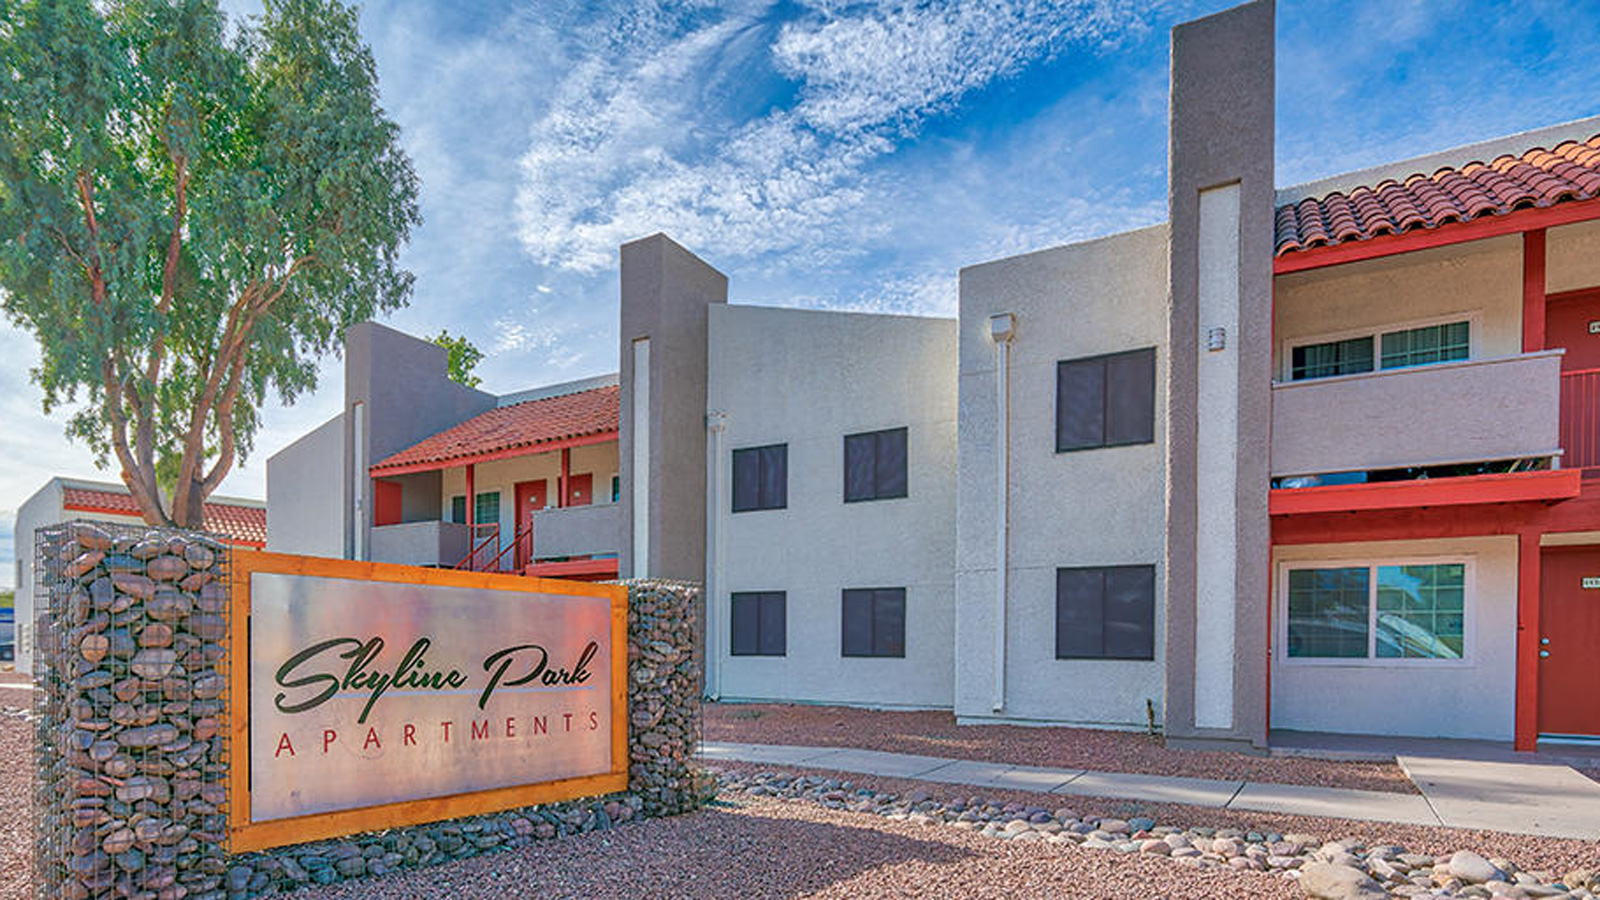 Skyline Park Apartments | 5290 South Park Avenue, Tucson, AZ 85706 | 60 Units | Built in 1985 | $2,600,000 | $43,333 Per Unit | $77.38 Per SF